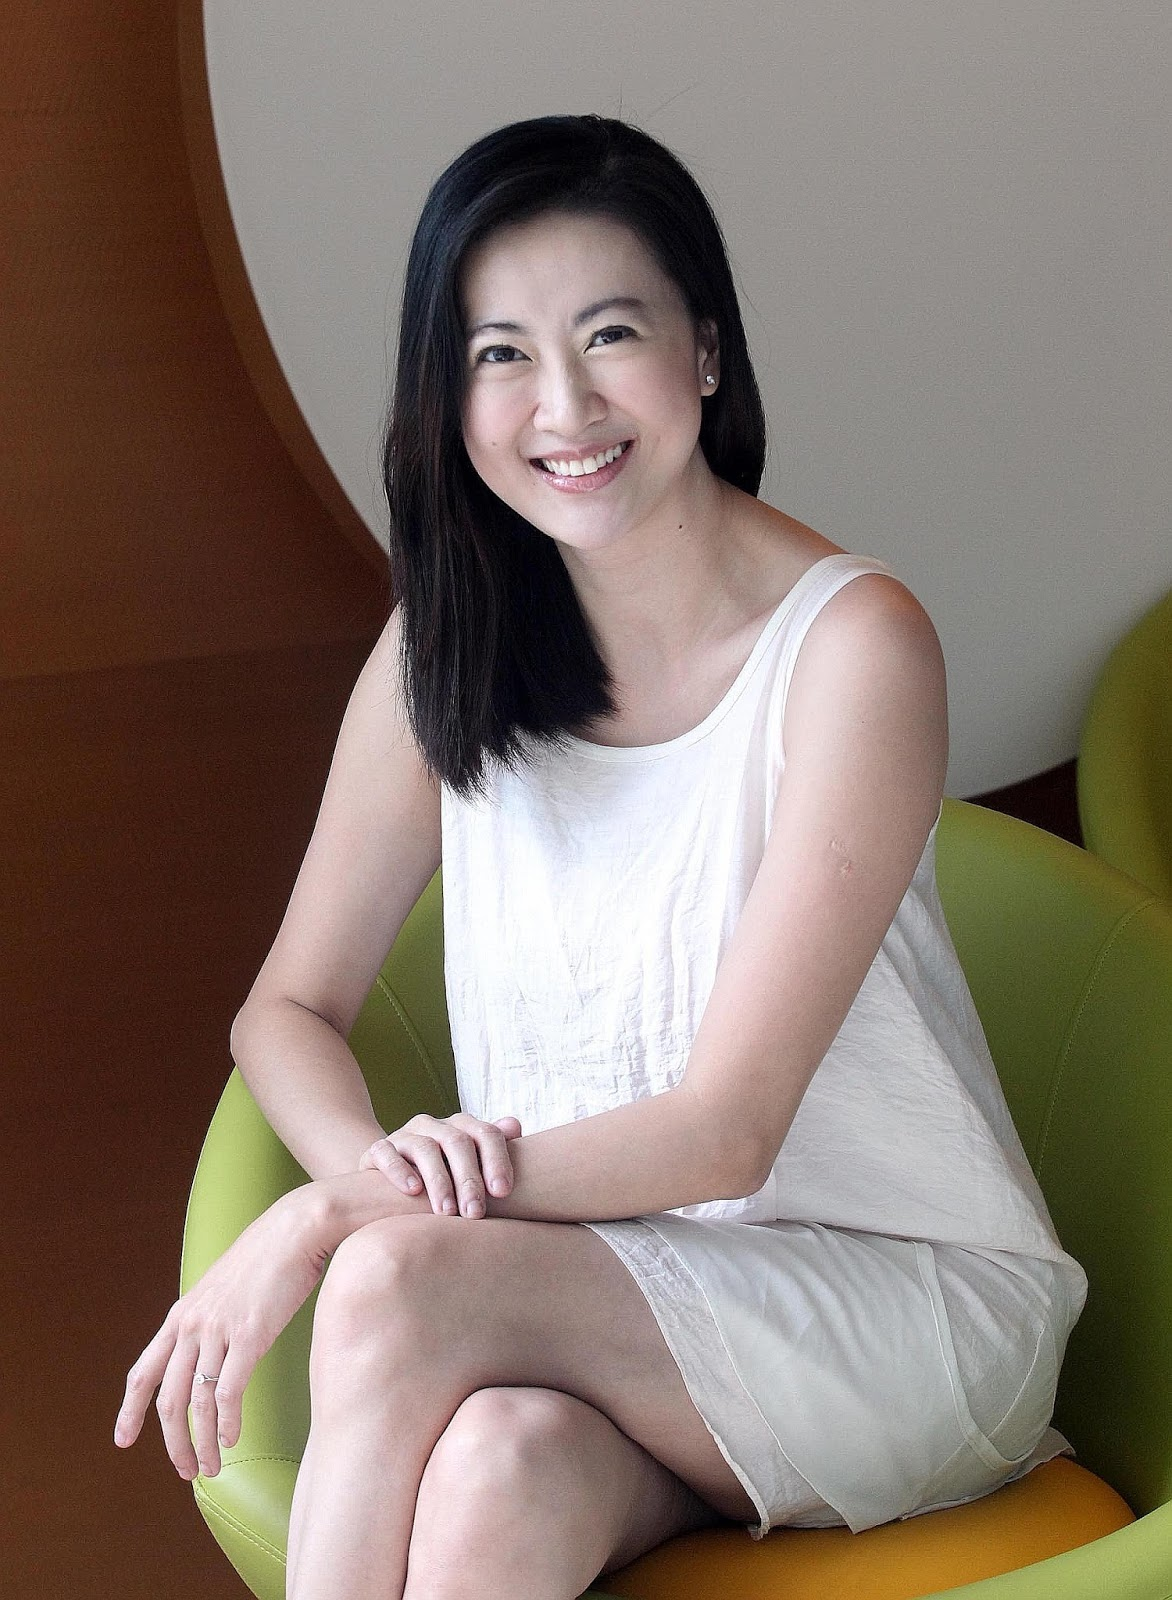 Actress Eelyn Kok, 郭蕙文 (Guō huì wén), found strength through religion, exercise, reading inspirational books and listening to Survivor, a song by defunct American girl-group Destiny's Child.